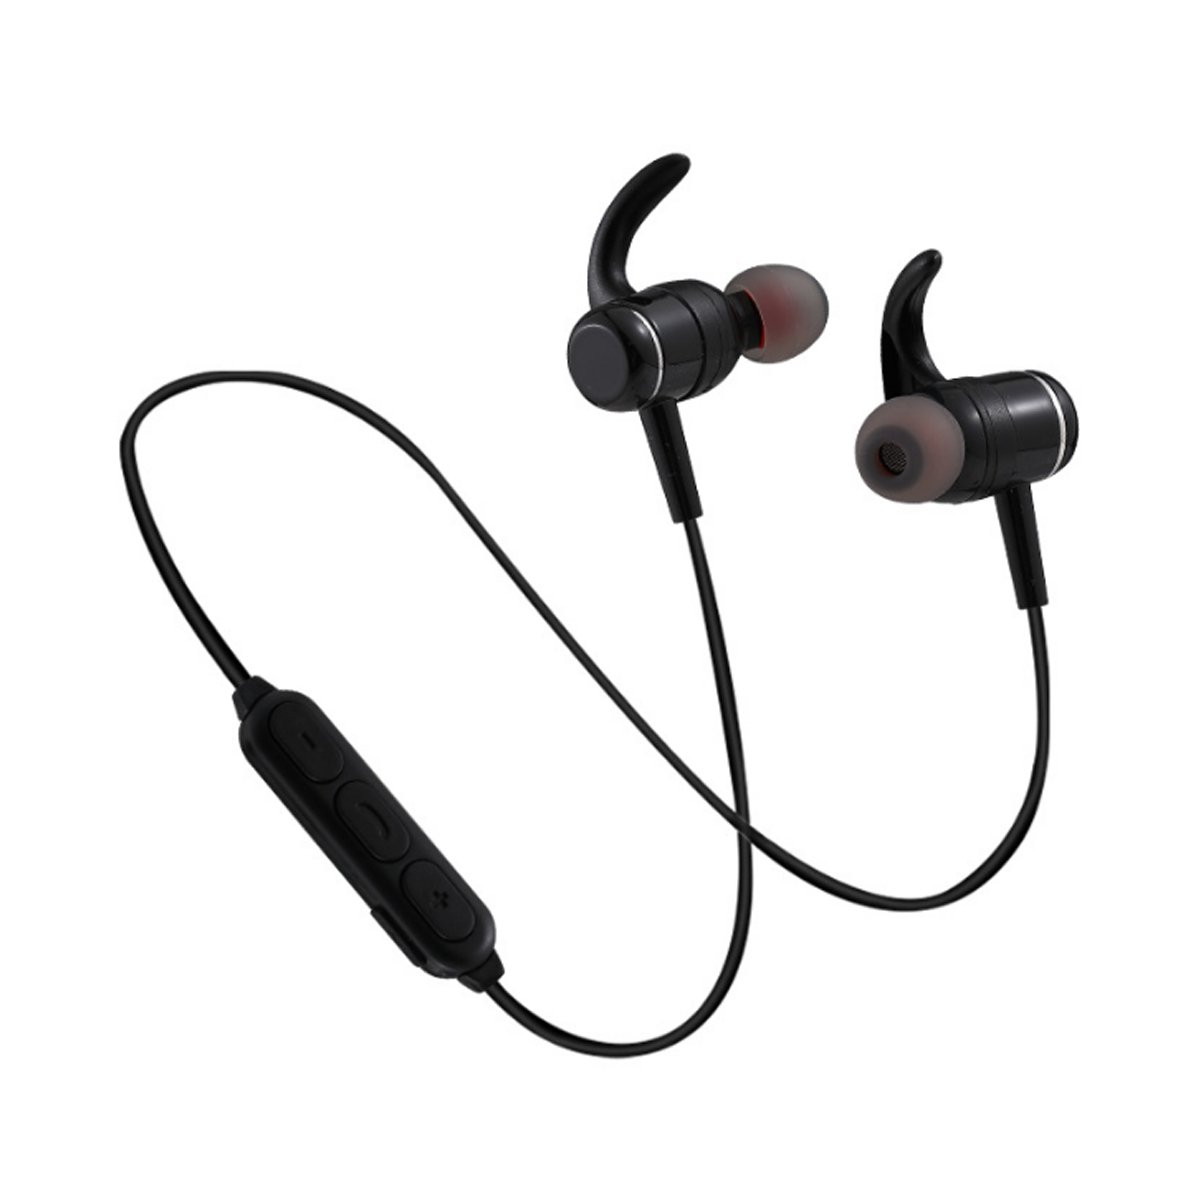 Wireless bluetooth sports headset metal magnetic stereophonic bass compatible with IOS android system (Black)